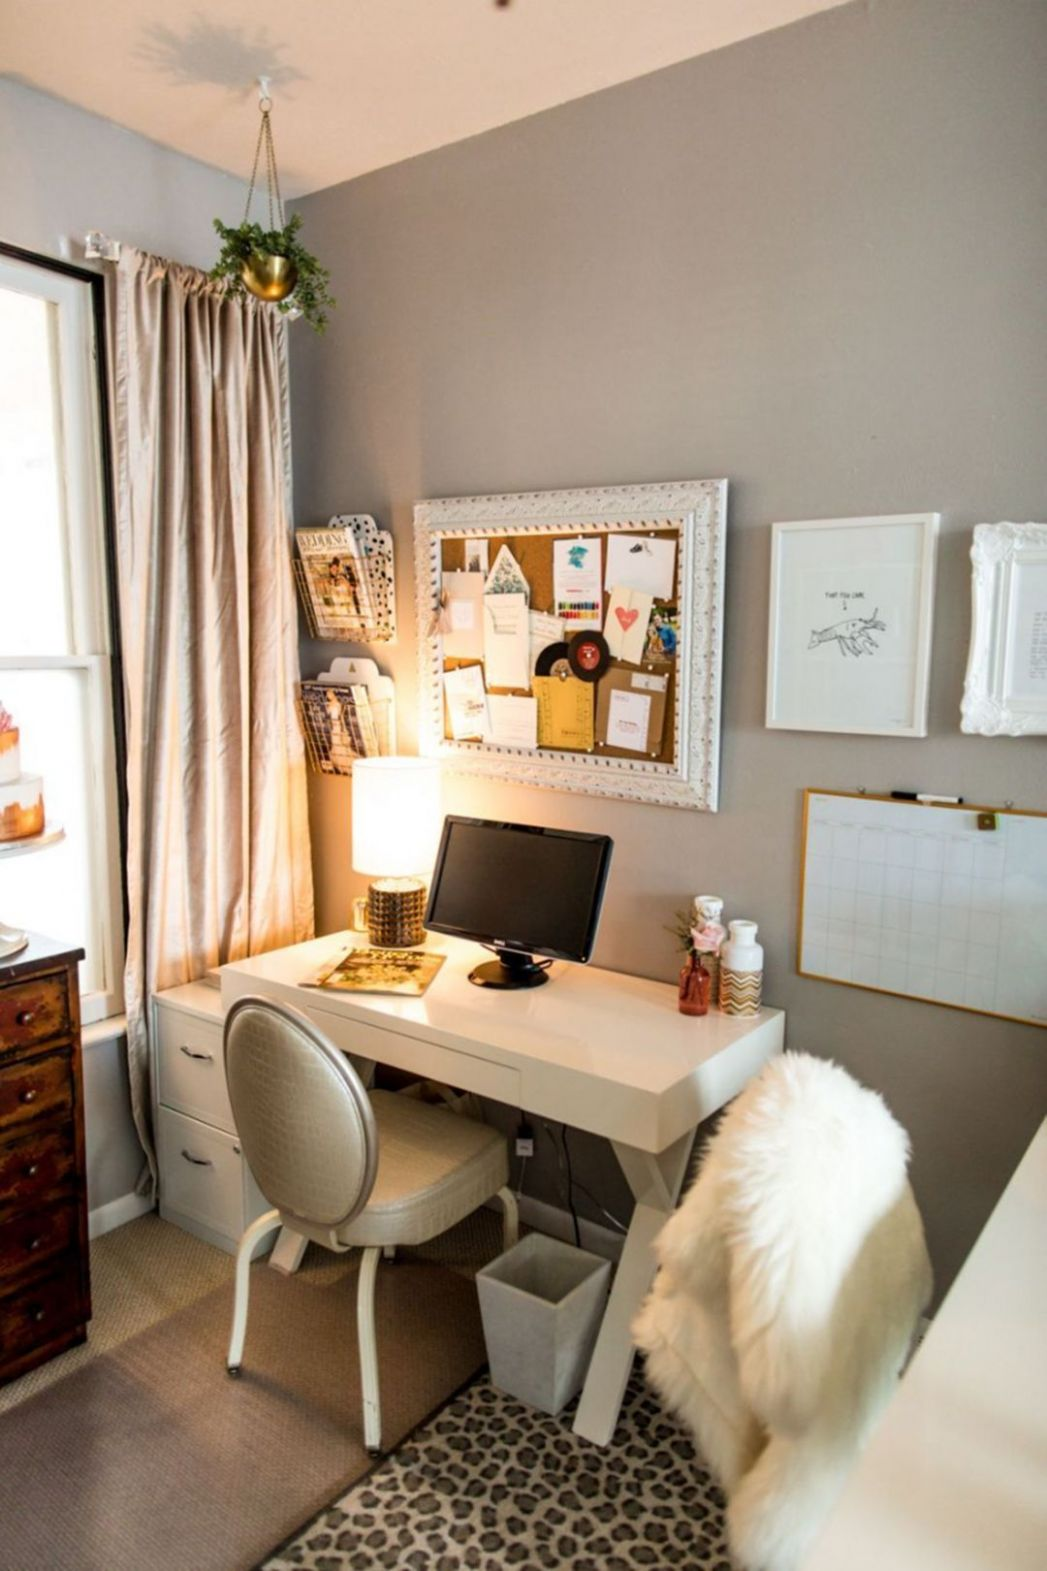 12 Beautiful Home Office Design Ideas For Small Spaces | Small ..